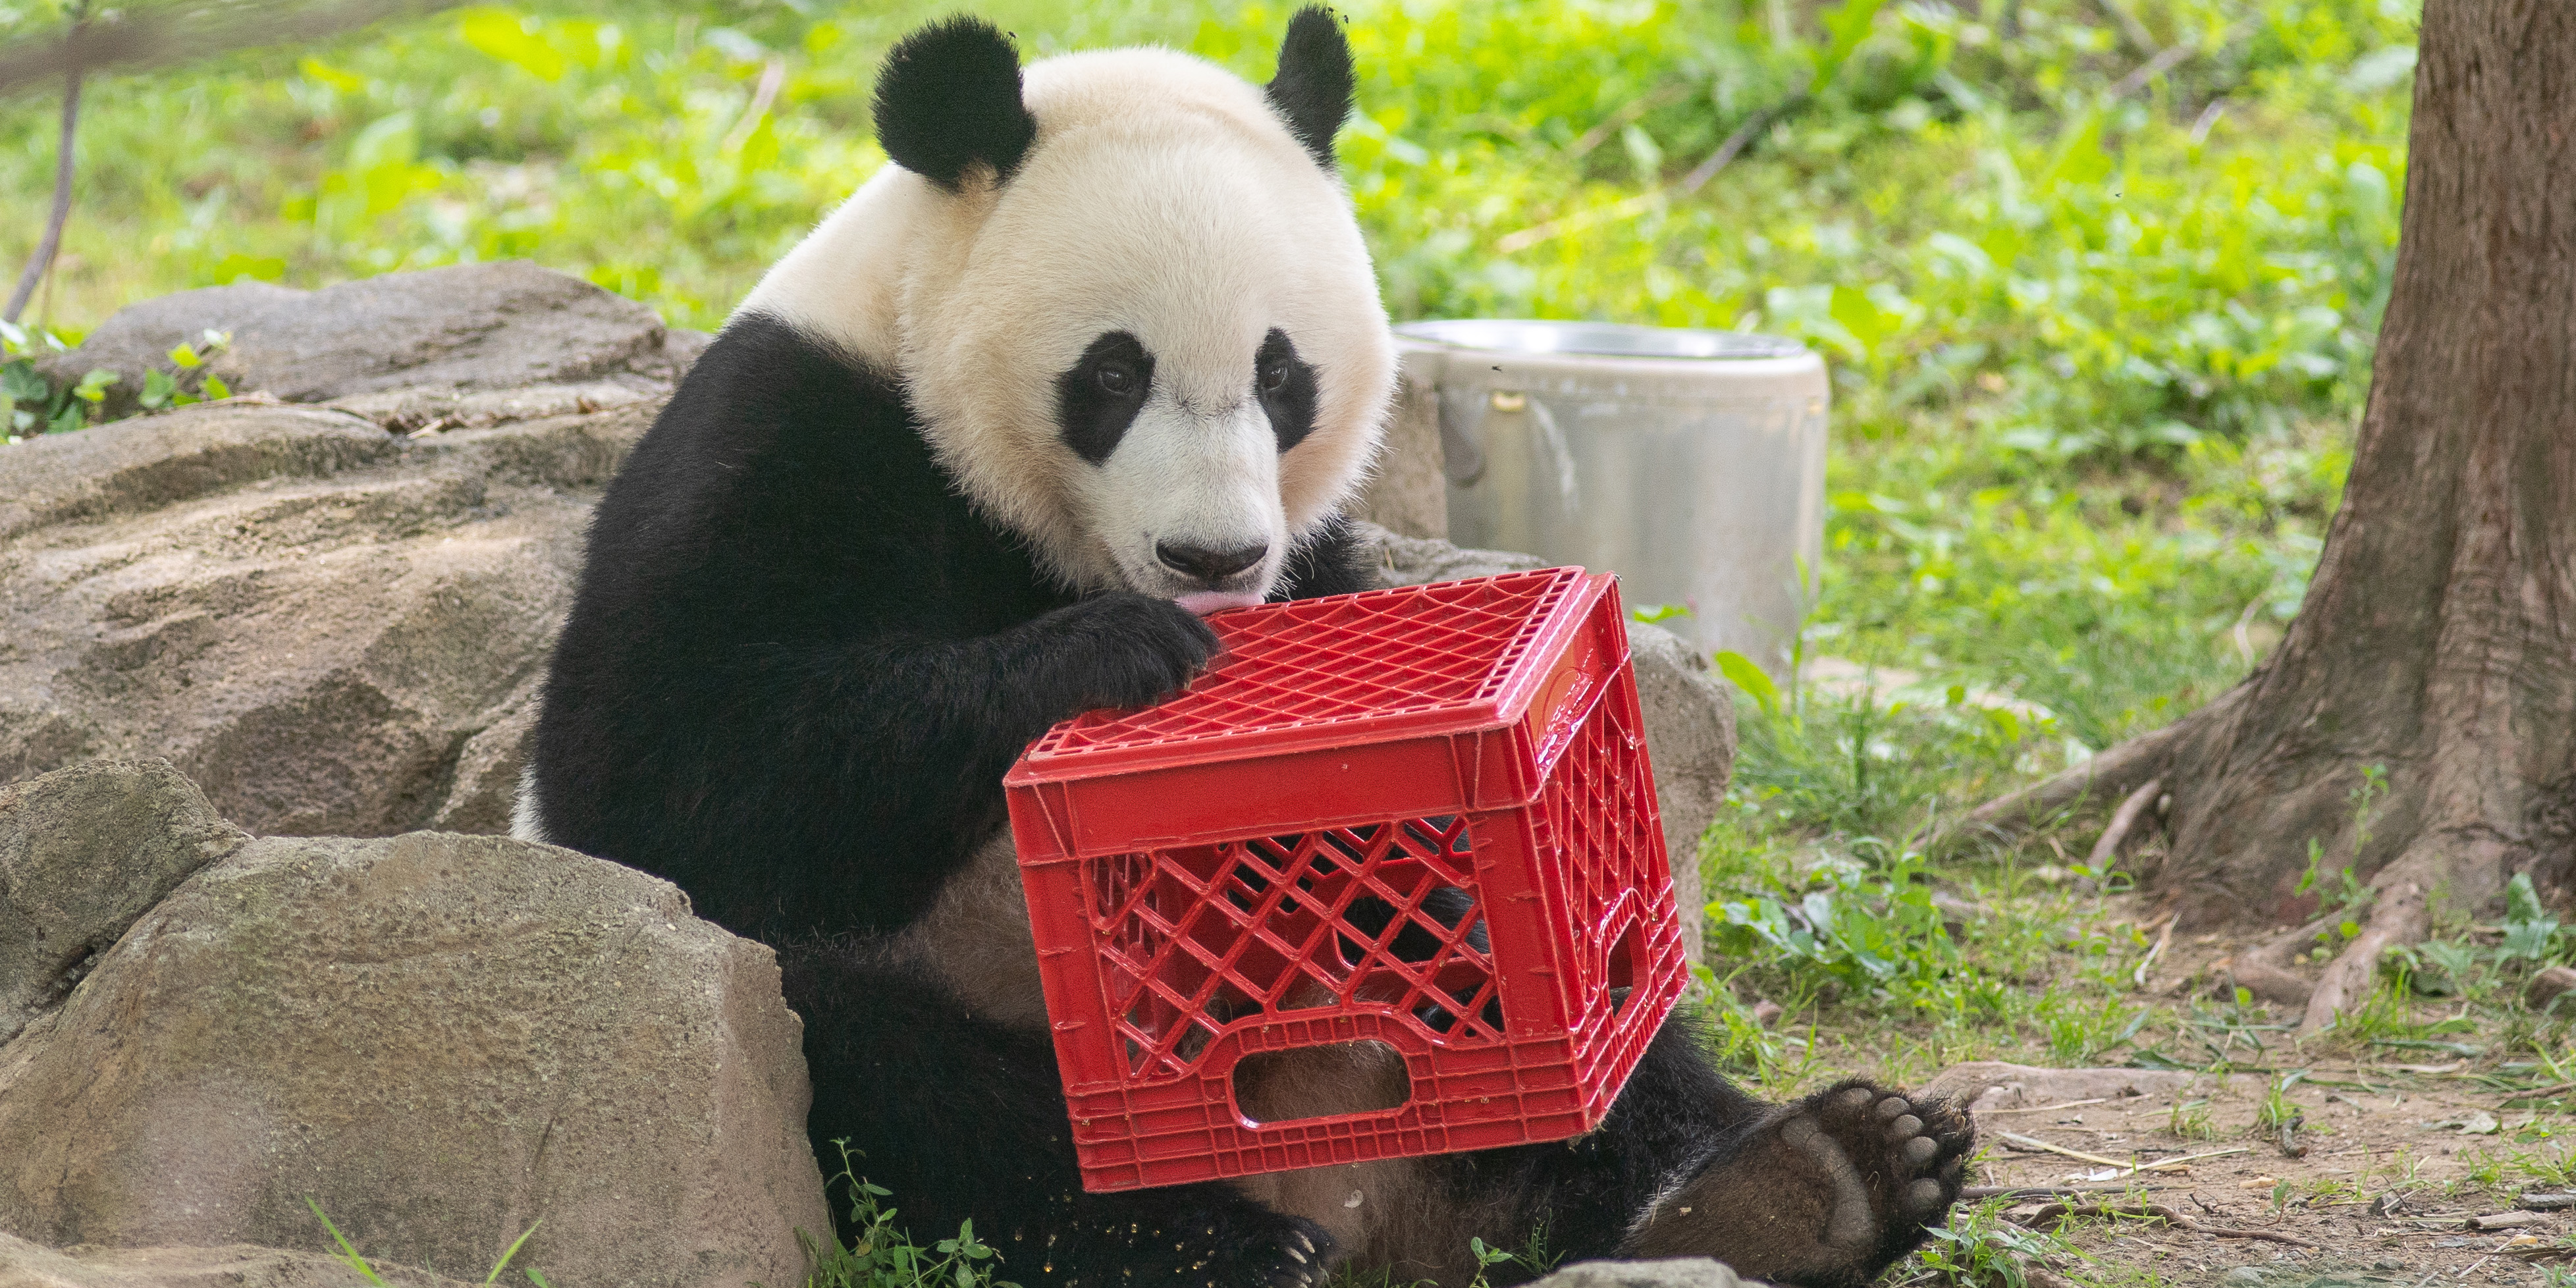 giant panda holding enrichment crate